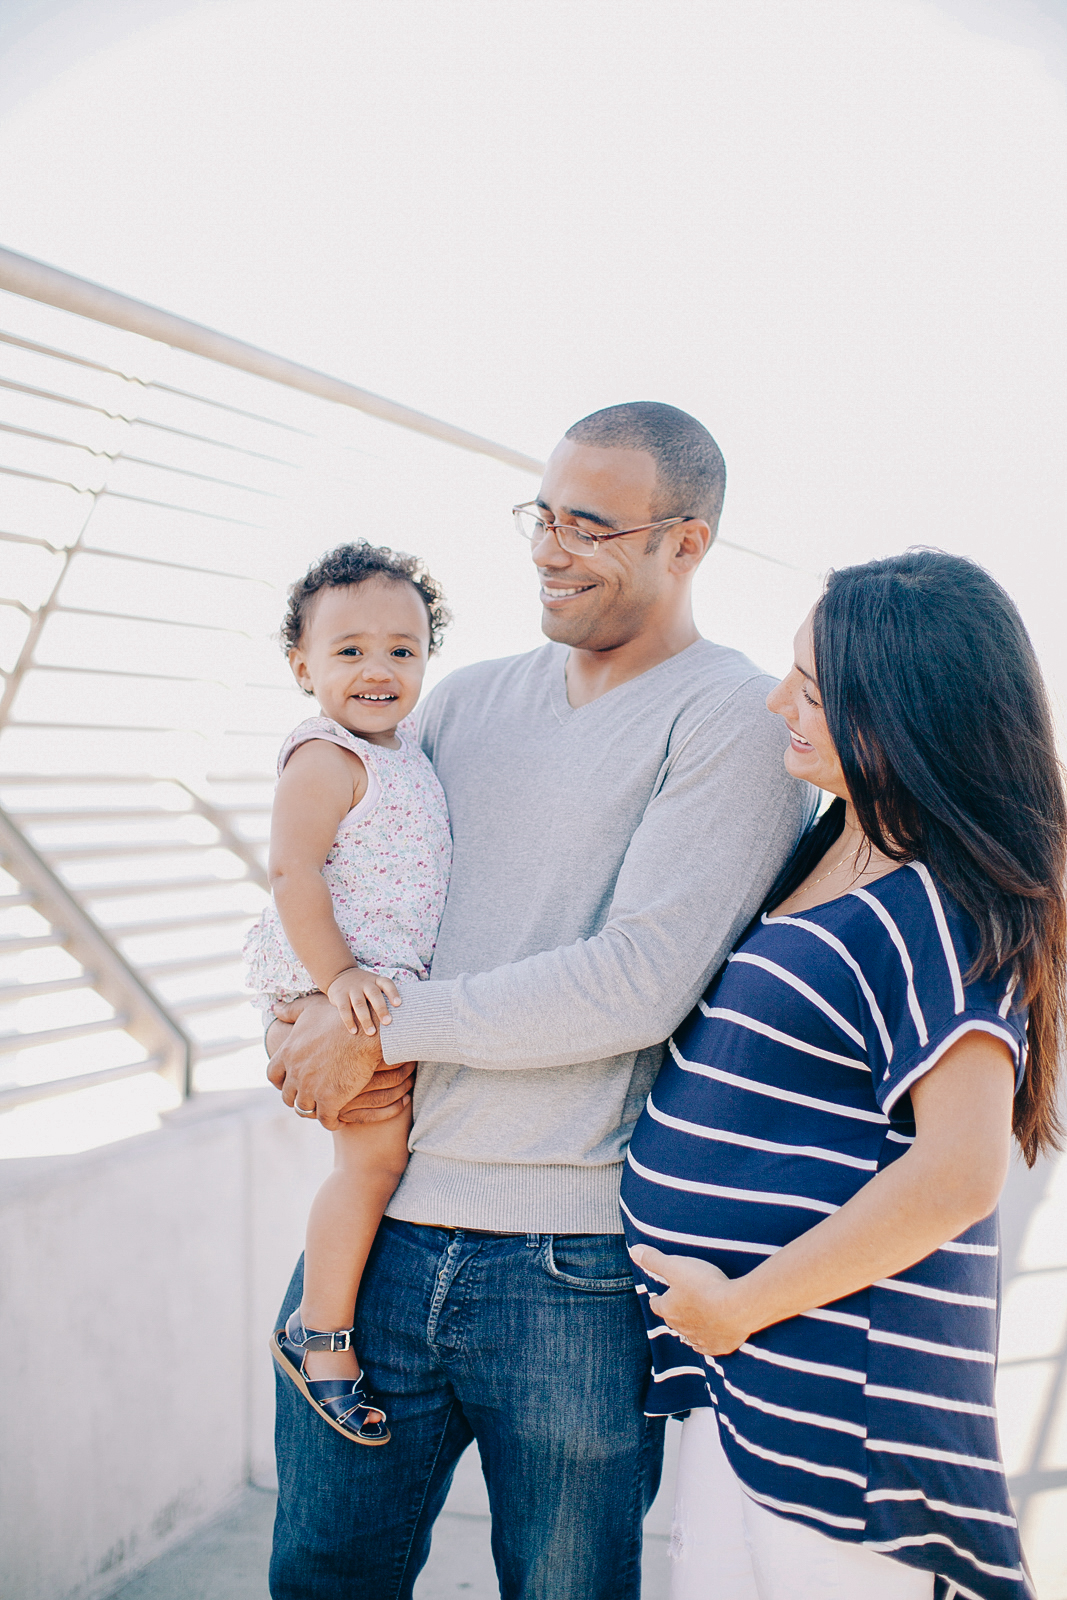 san_francisco_family_photography_larkin_ebony_siovhan_bokeh_photography_18.jpg